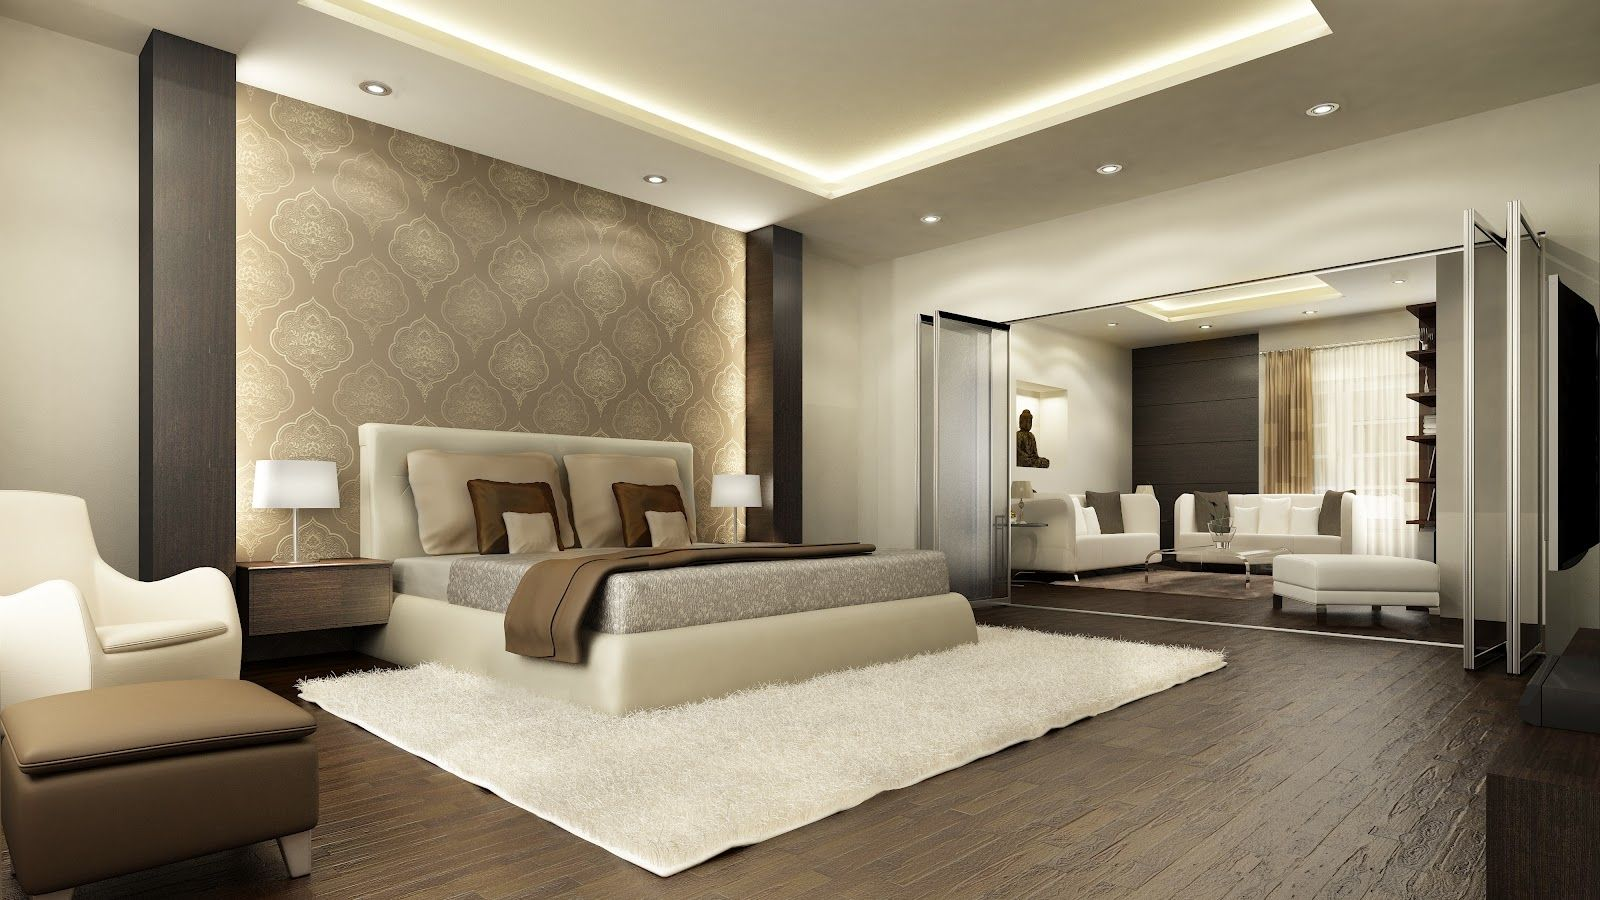 Bedroom Interior : Sophisticated Penthouse Master Bedroom